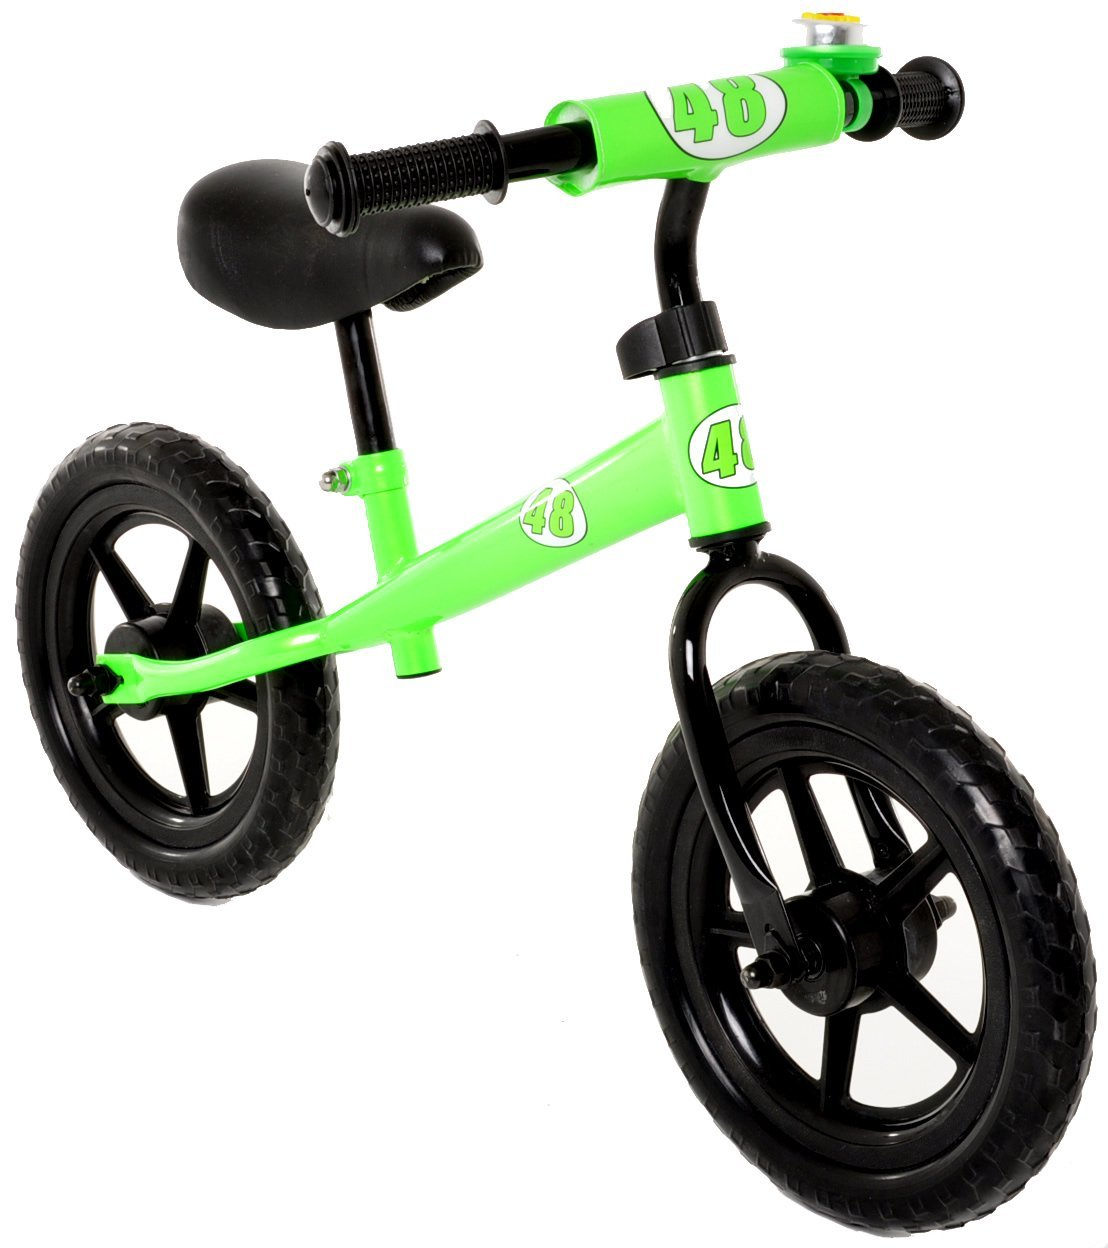 Top 10 Best Kids Bicycles in 2018 Review